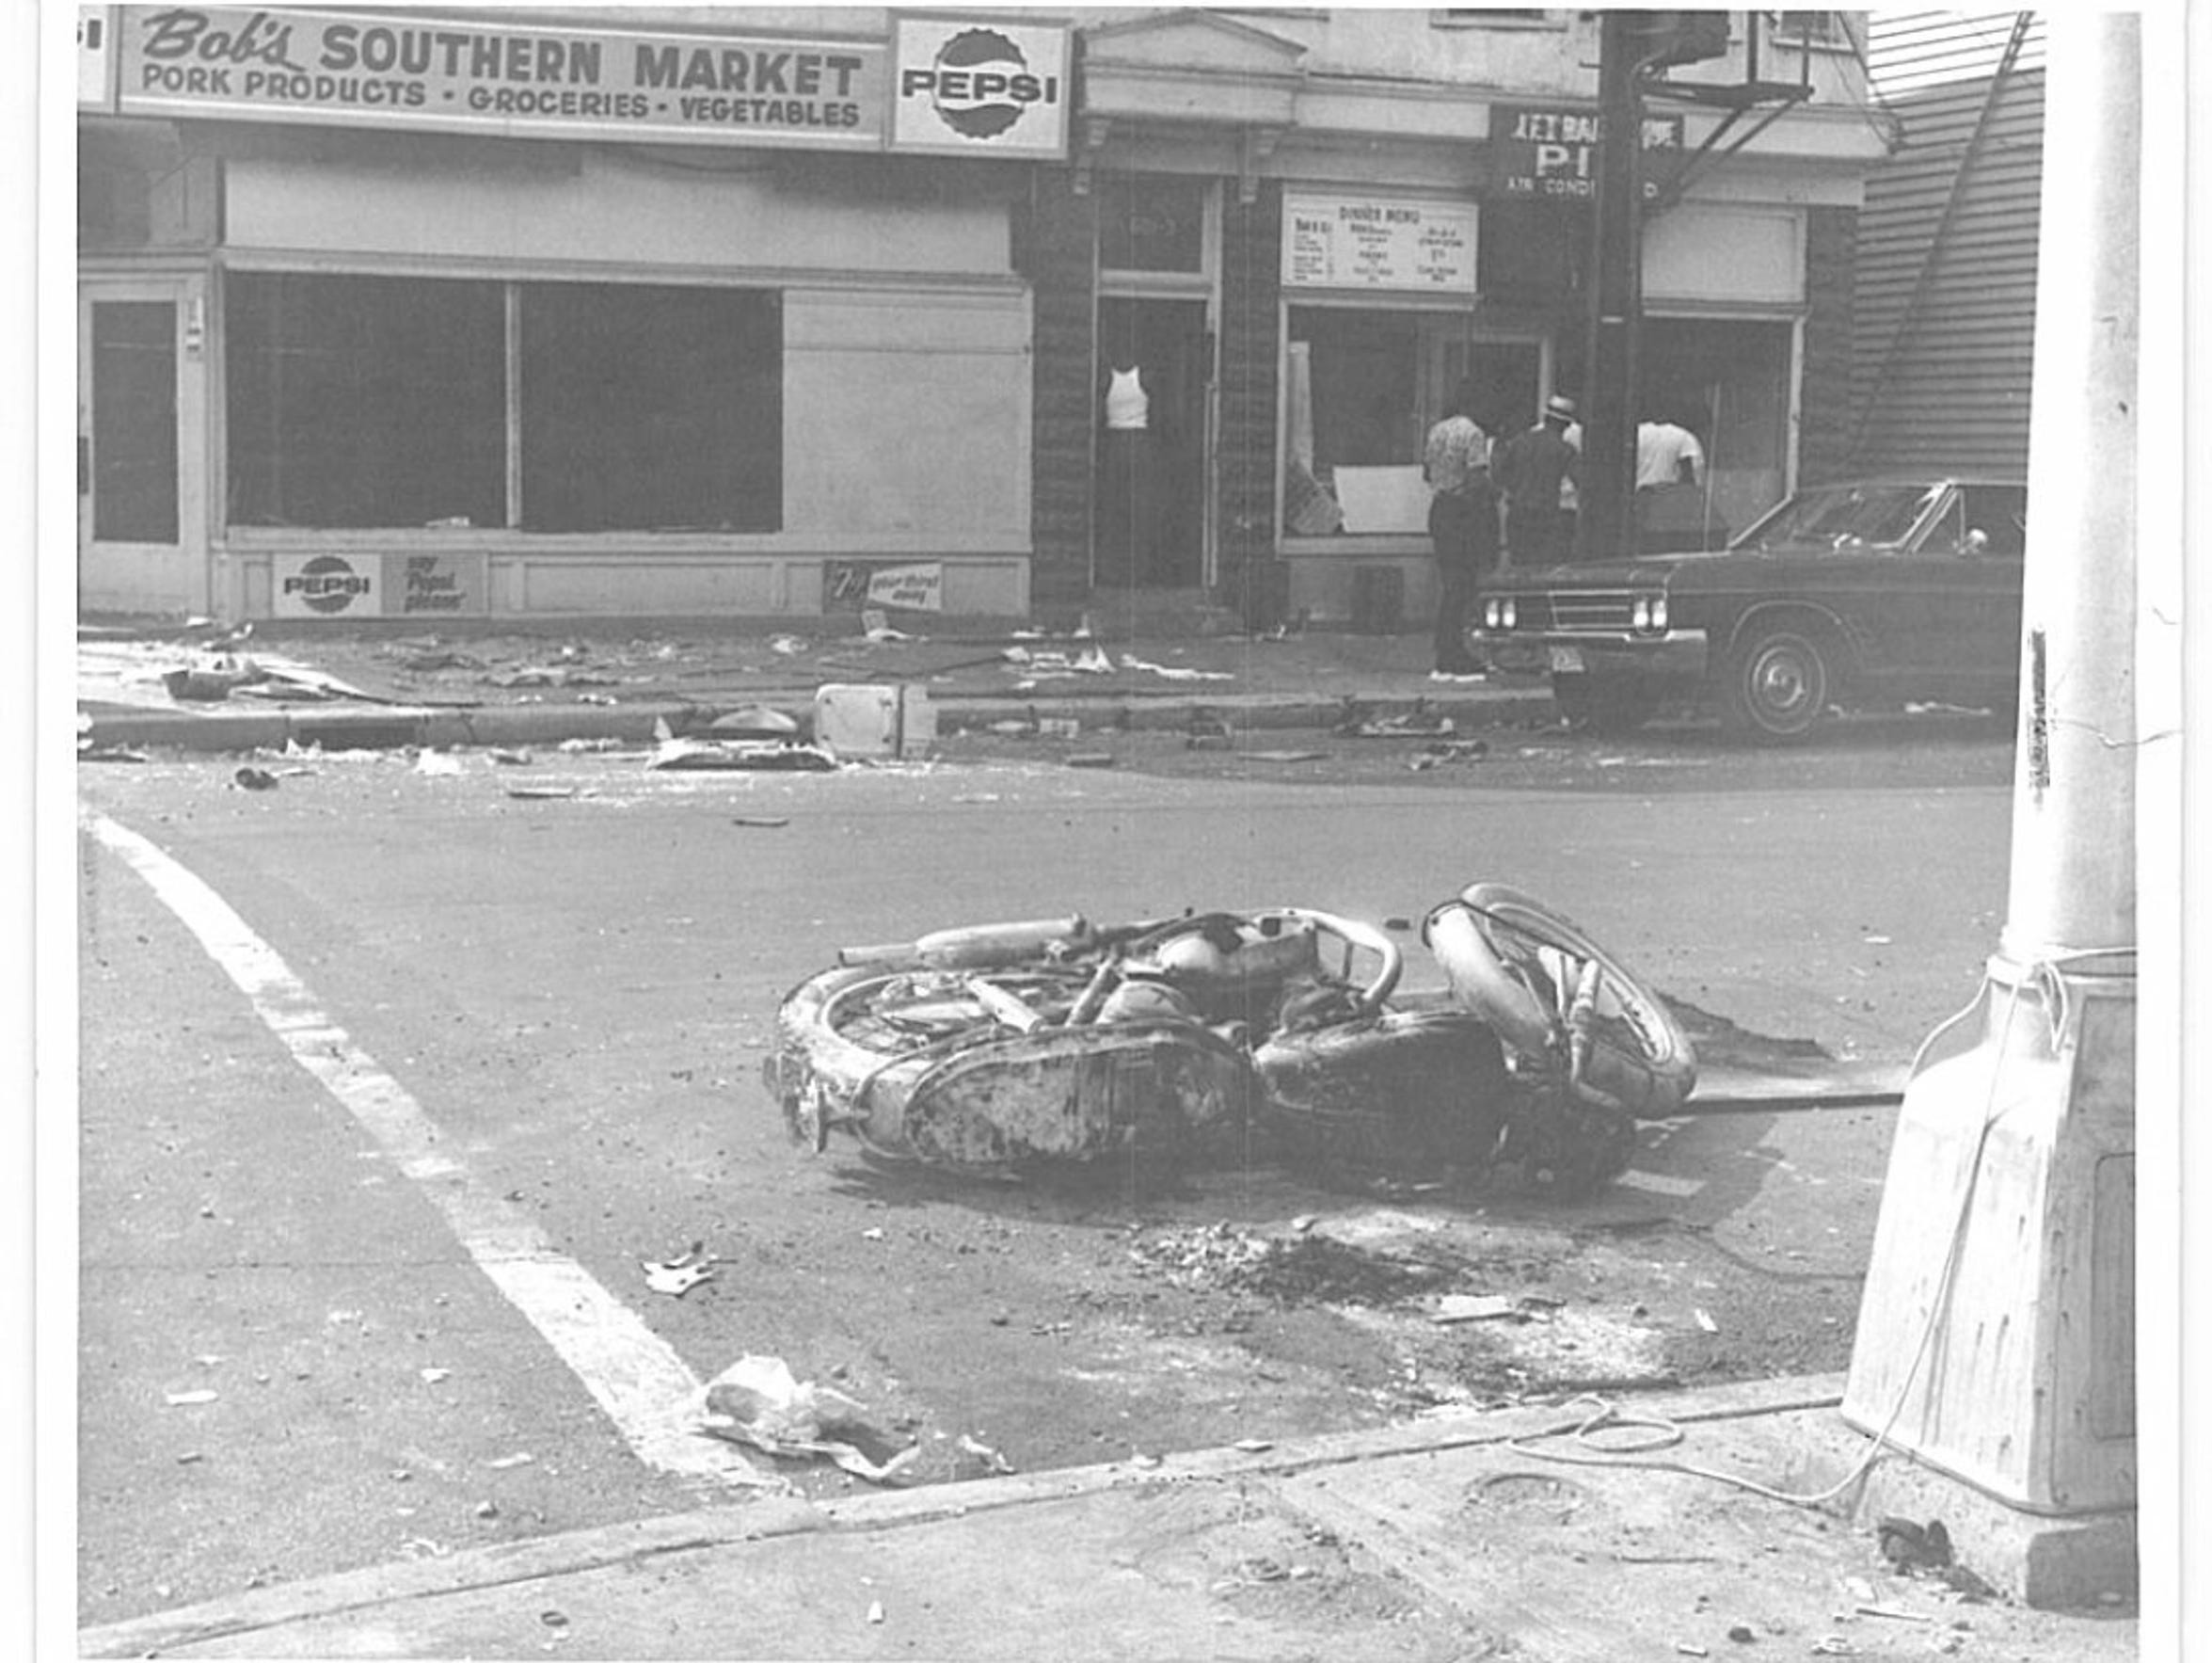 In the long, hot summer of 1967, Plainfield was engulfed